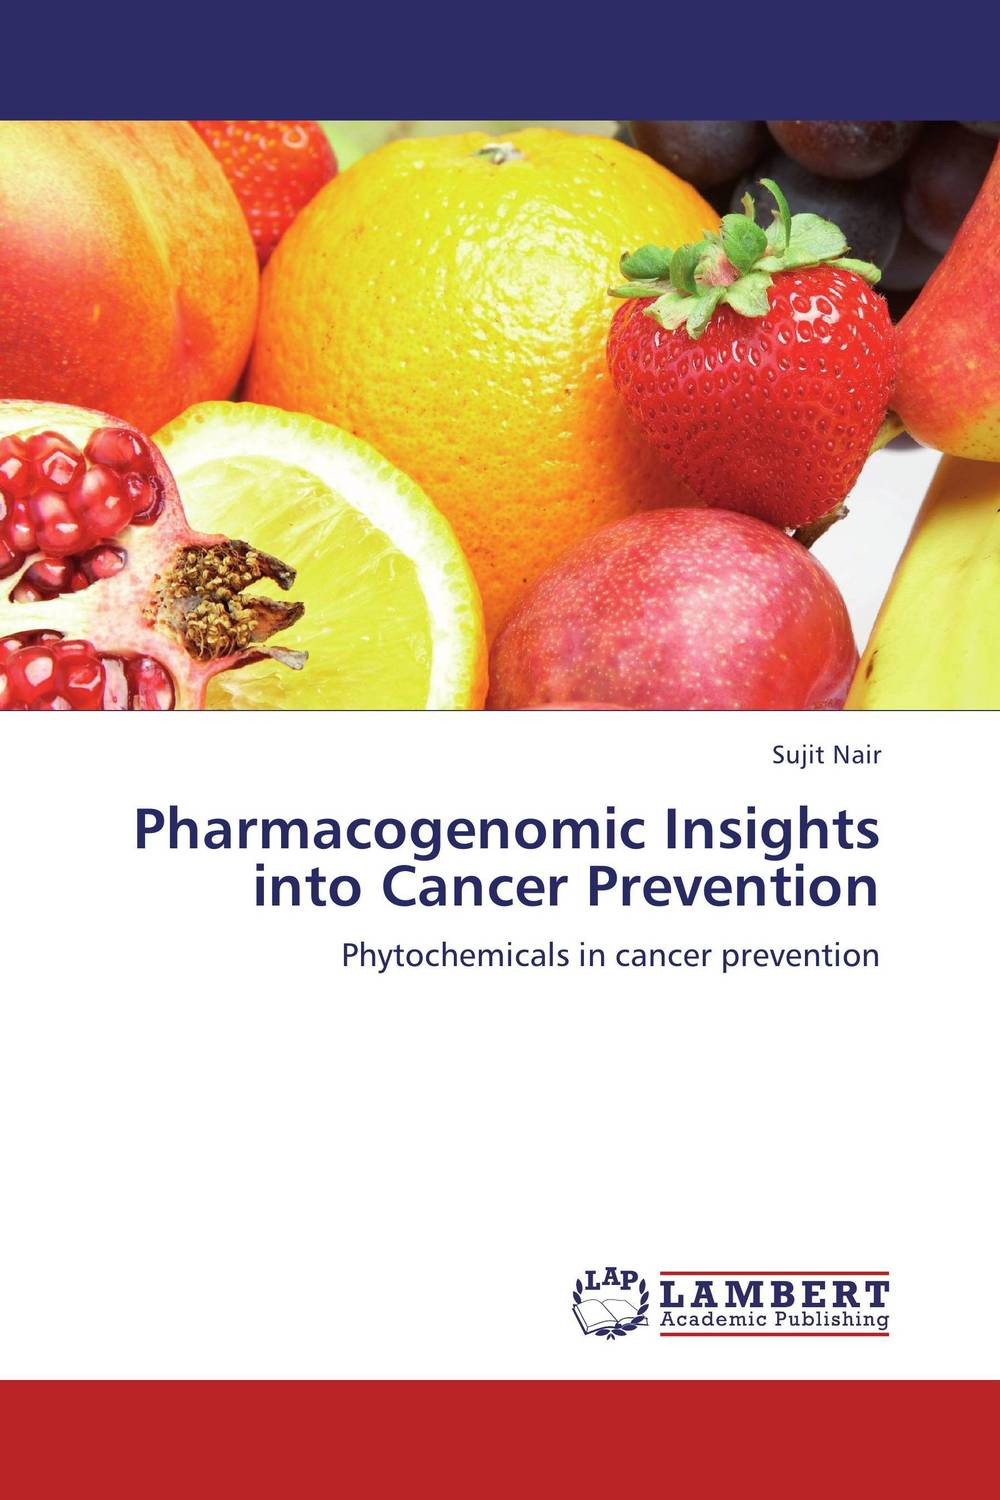 Фото Pharmacogenomic Insights into Cancer Prevention cervical cancer in amhara region in ethiopia